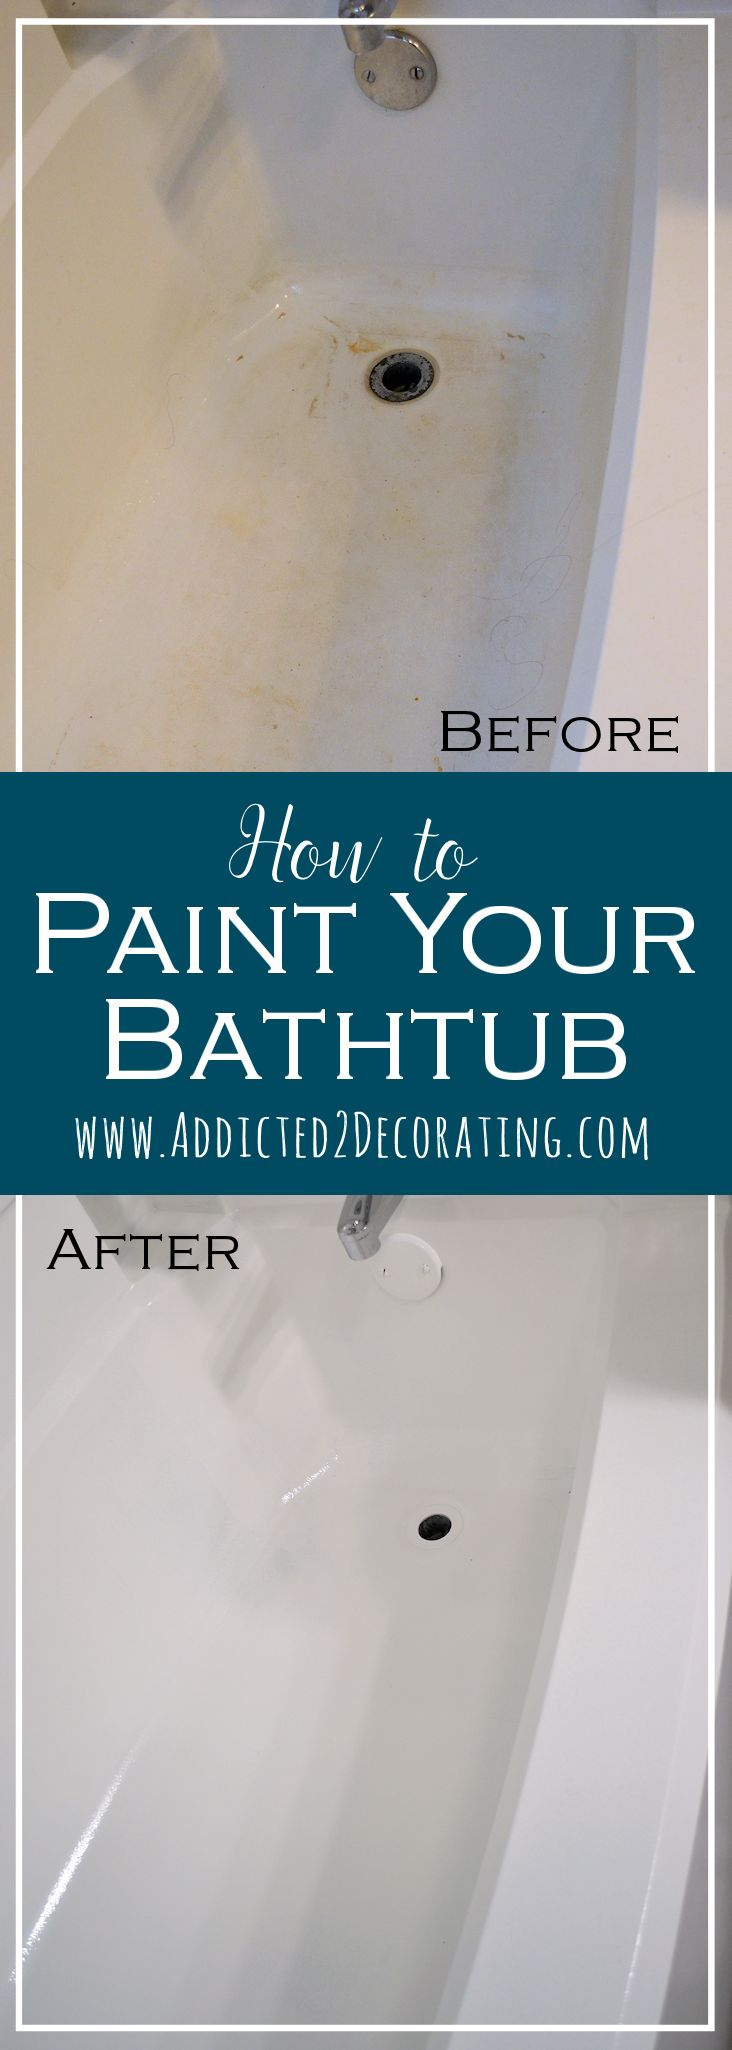 How to paint your bathtub - before and after. Our tub is painted already but it's chipping. This might be a job for Patrick